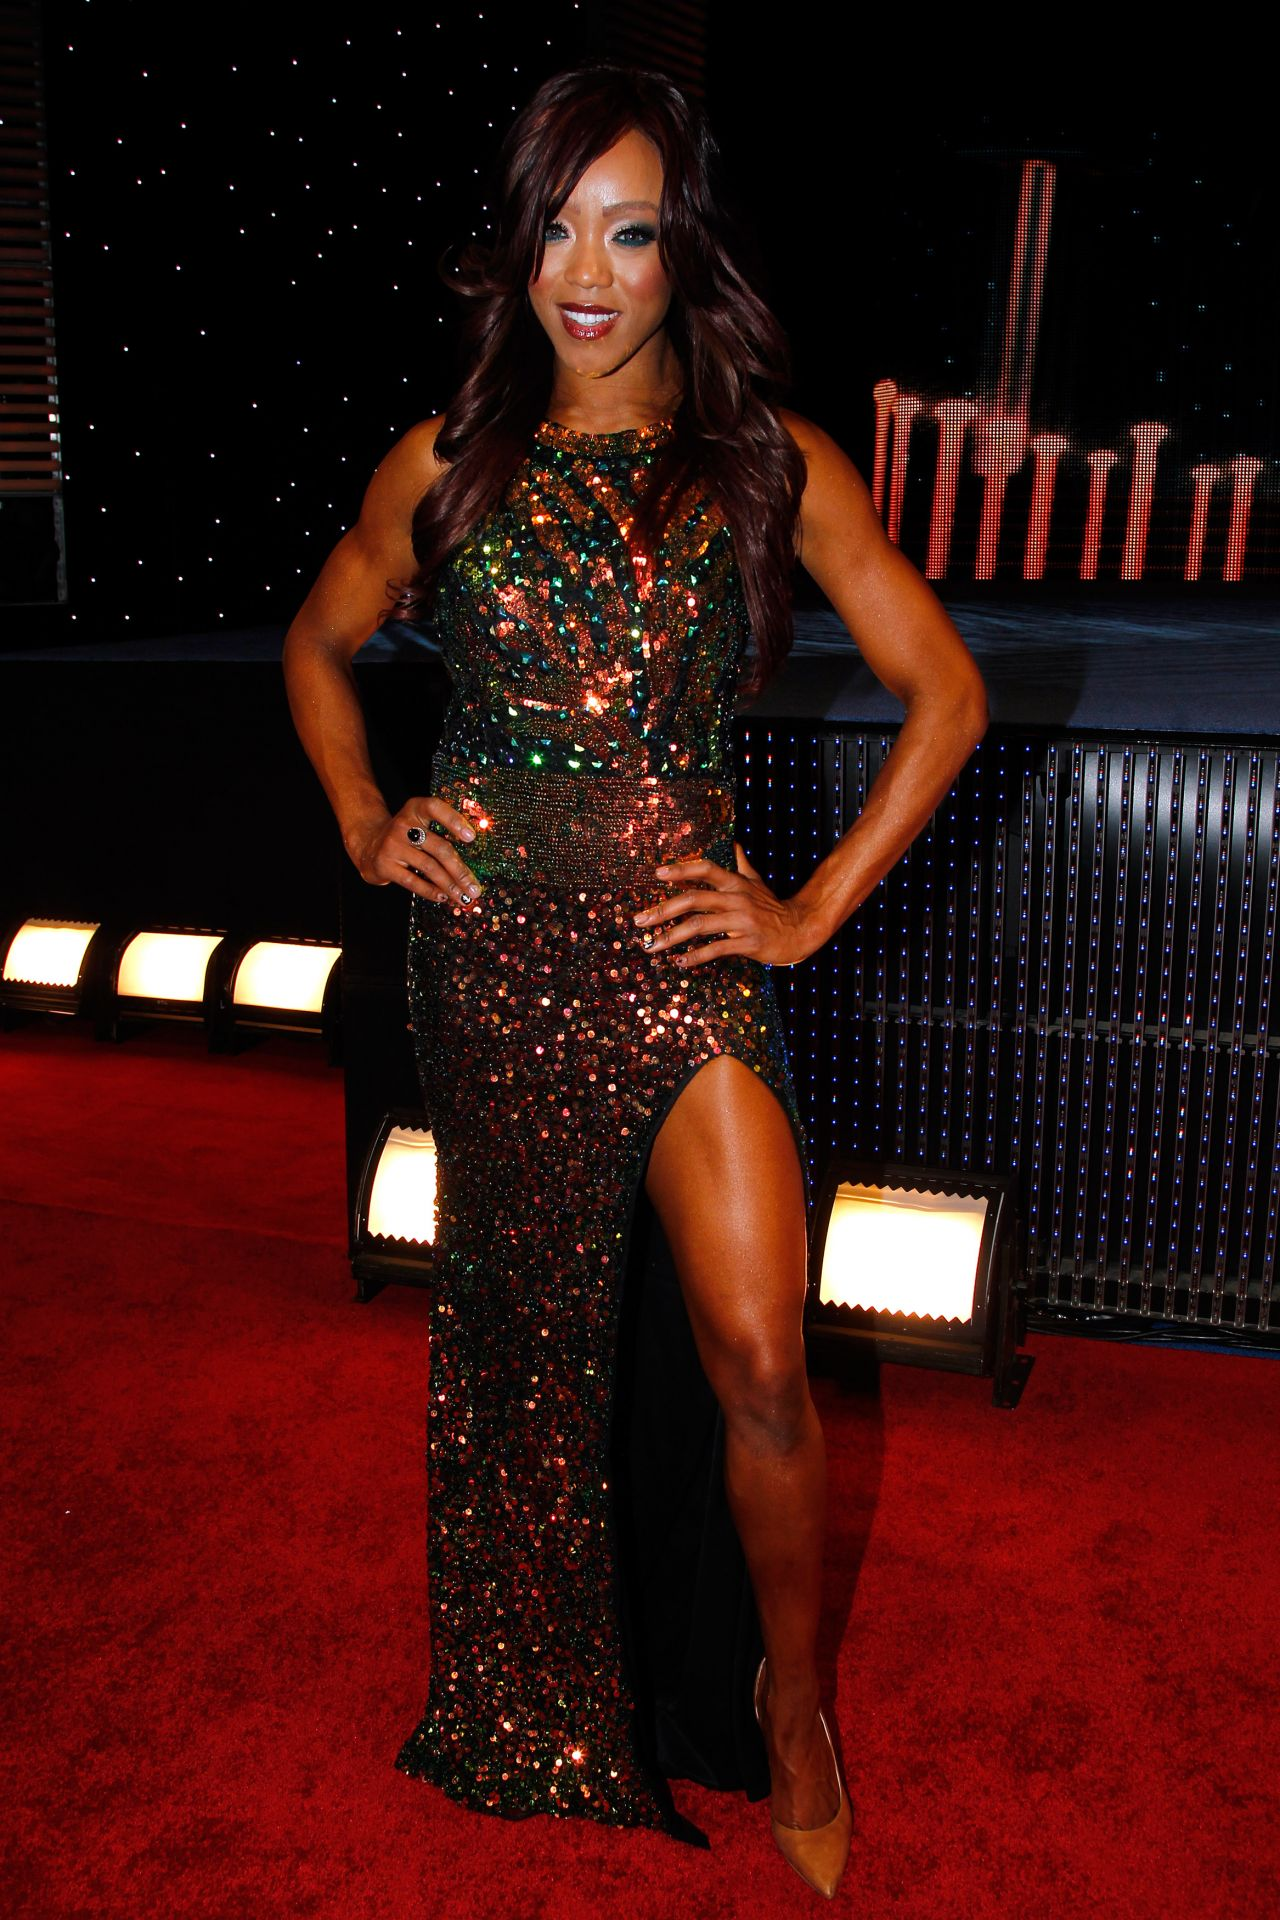 Victoria Crawford (Alicia Fox) - WWE Hall of Fame ...Wwe Hall Of Fame 2014 Inductees